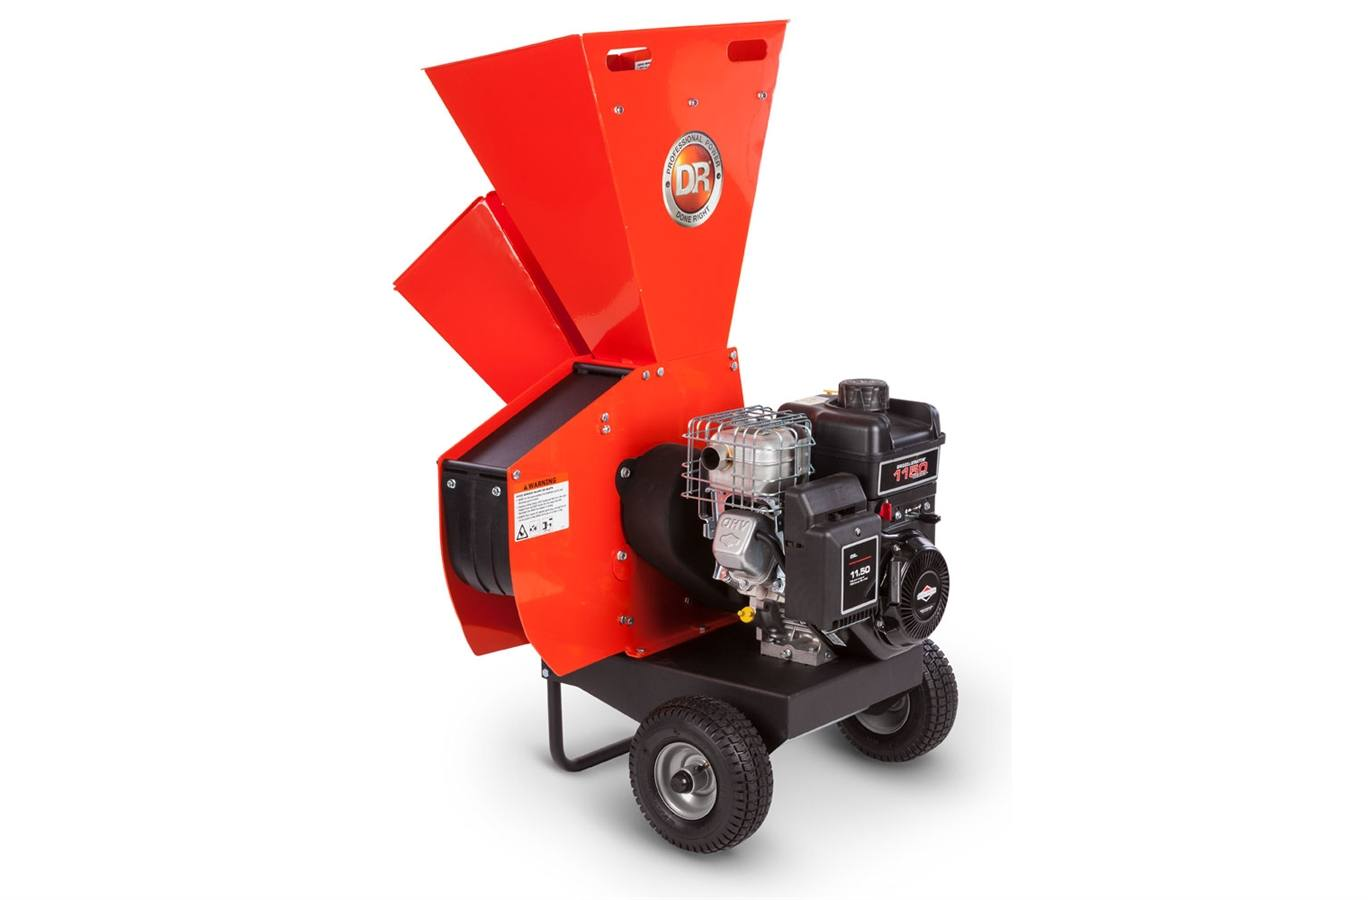 2018 DR Power CSR11BM DR Wood Chipper Shredder Manual Start